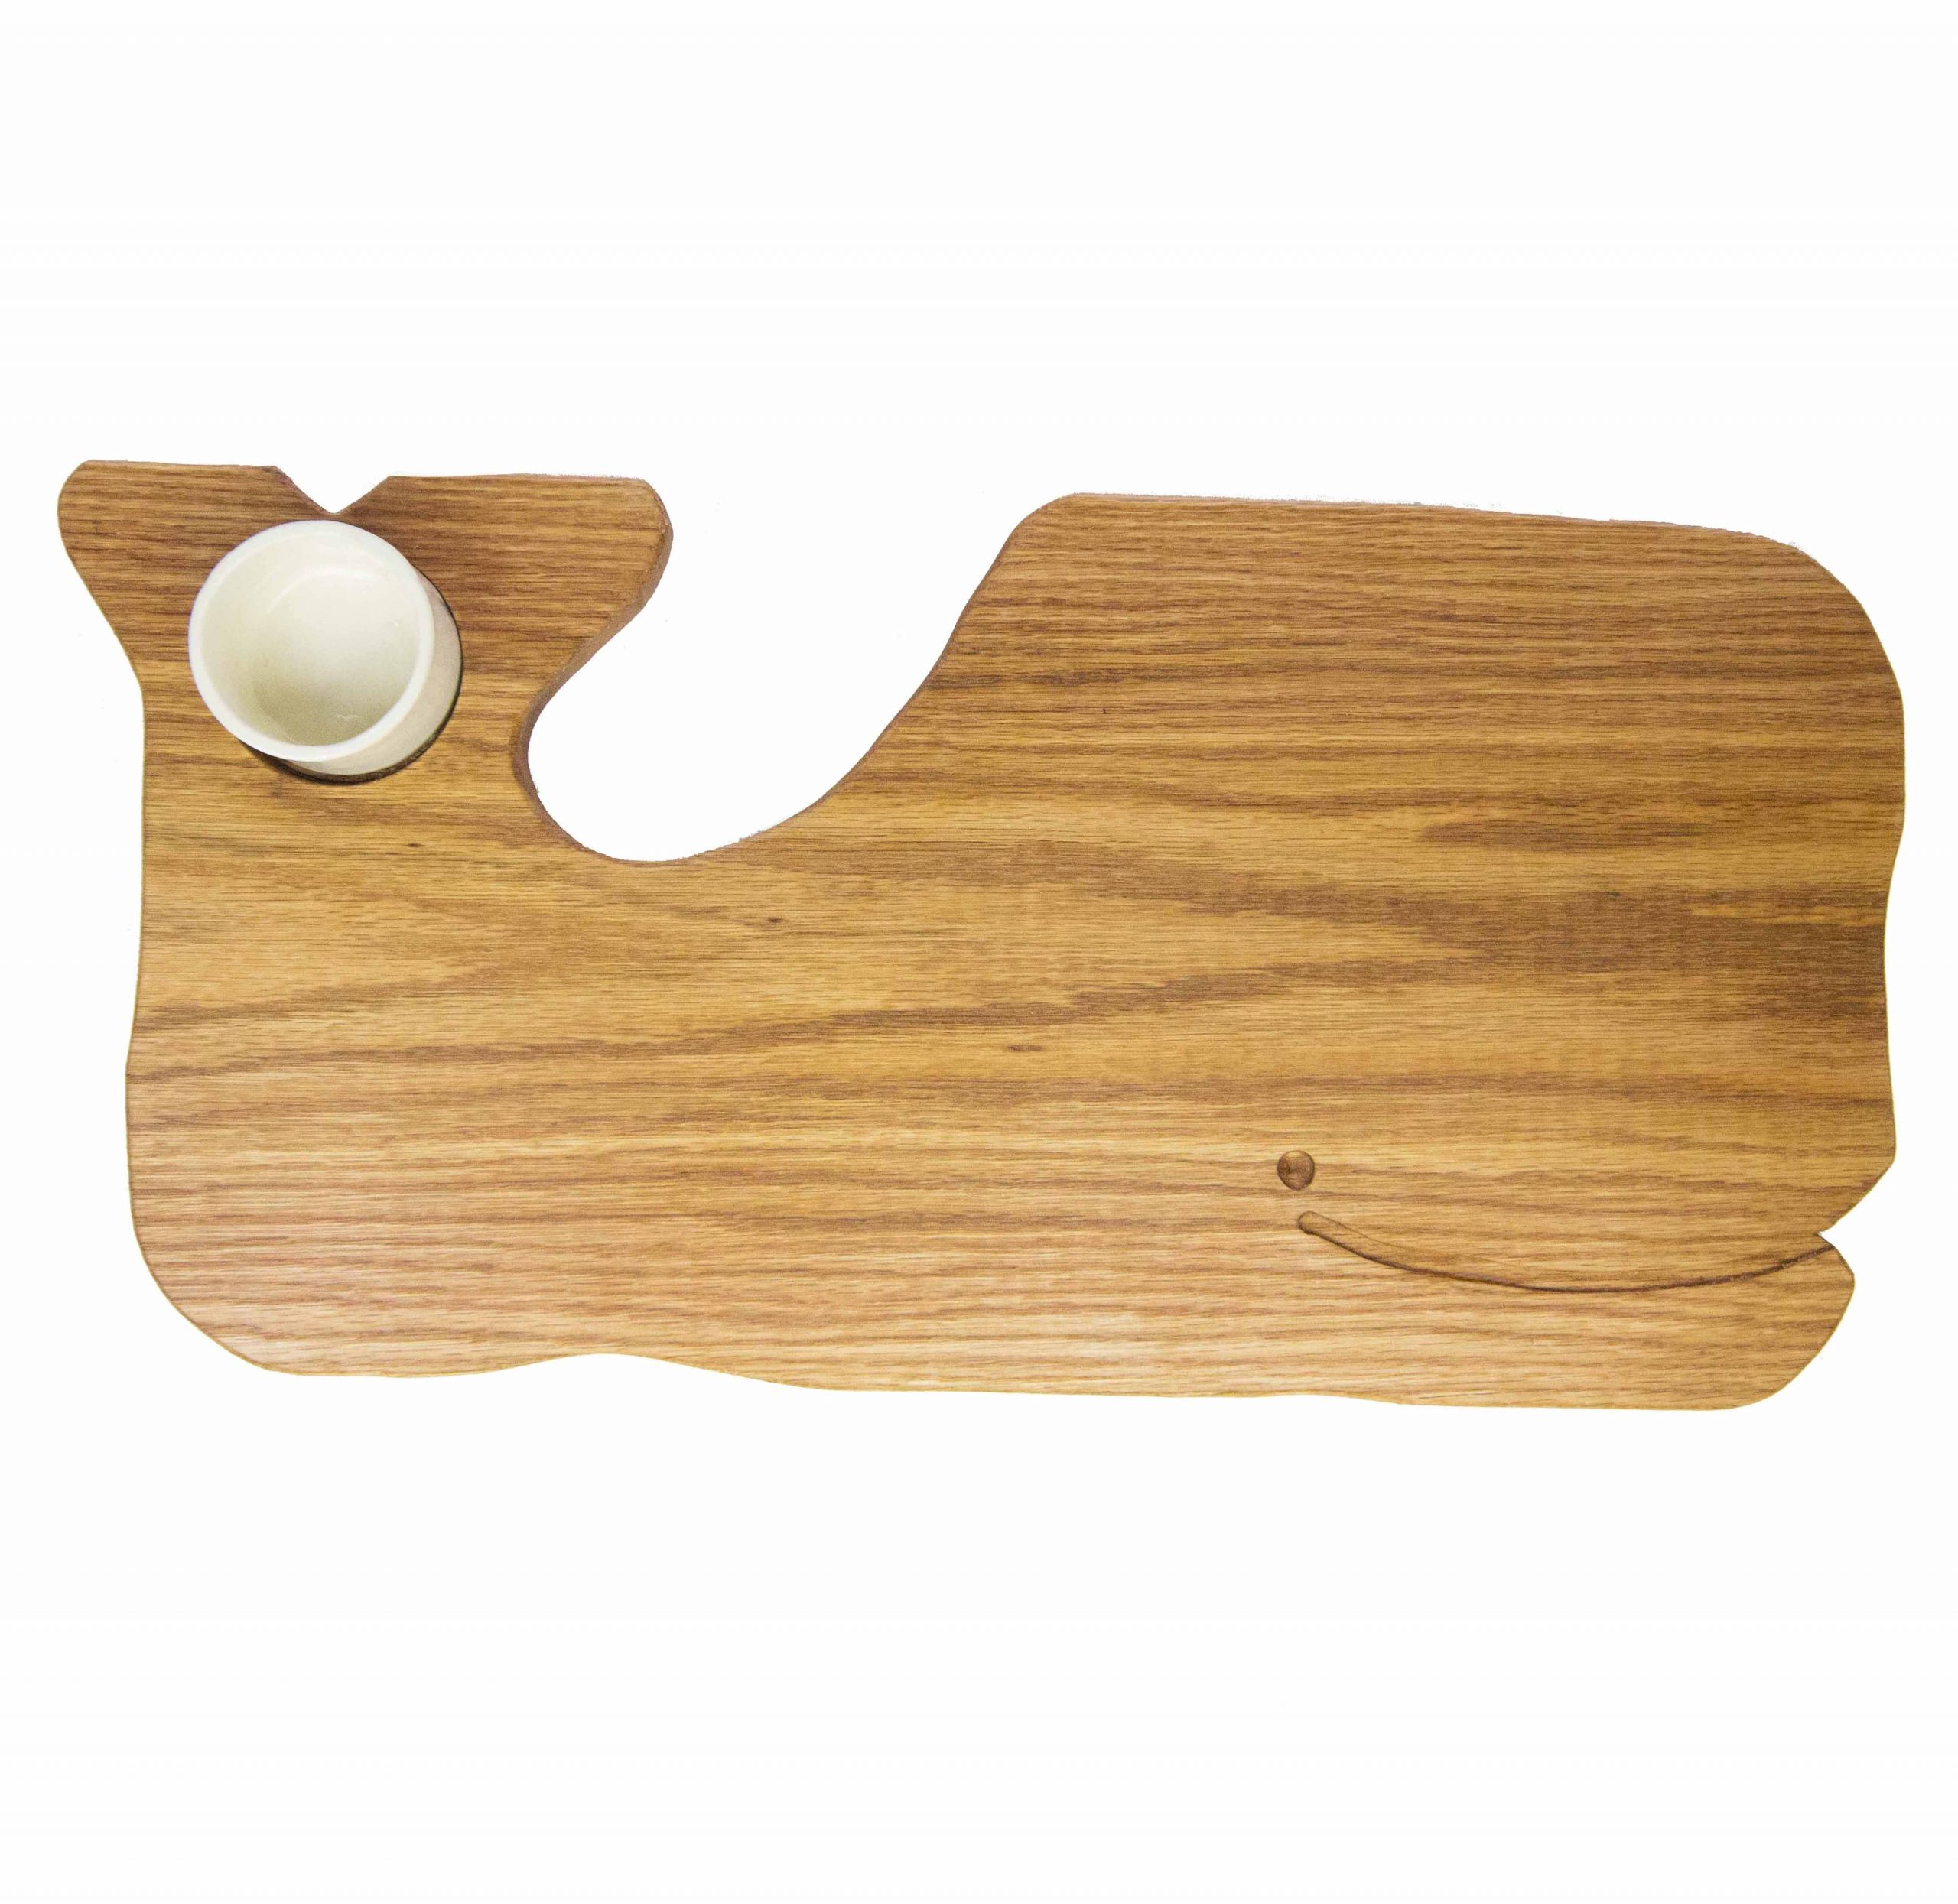 Whale Shaped Charcuterie Board Platter with Seated Ramekin - Gift Shopping - Whale Cheese Board - Sperm Whale Board - USA MADE IN USA Handcrafted Mendocino